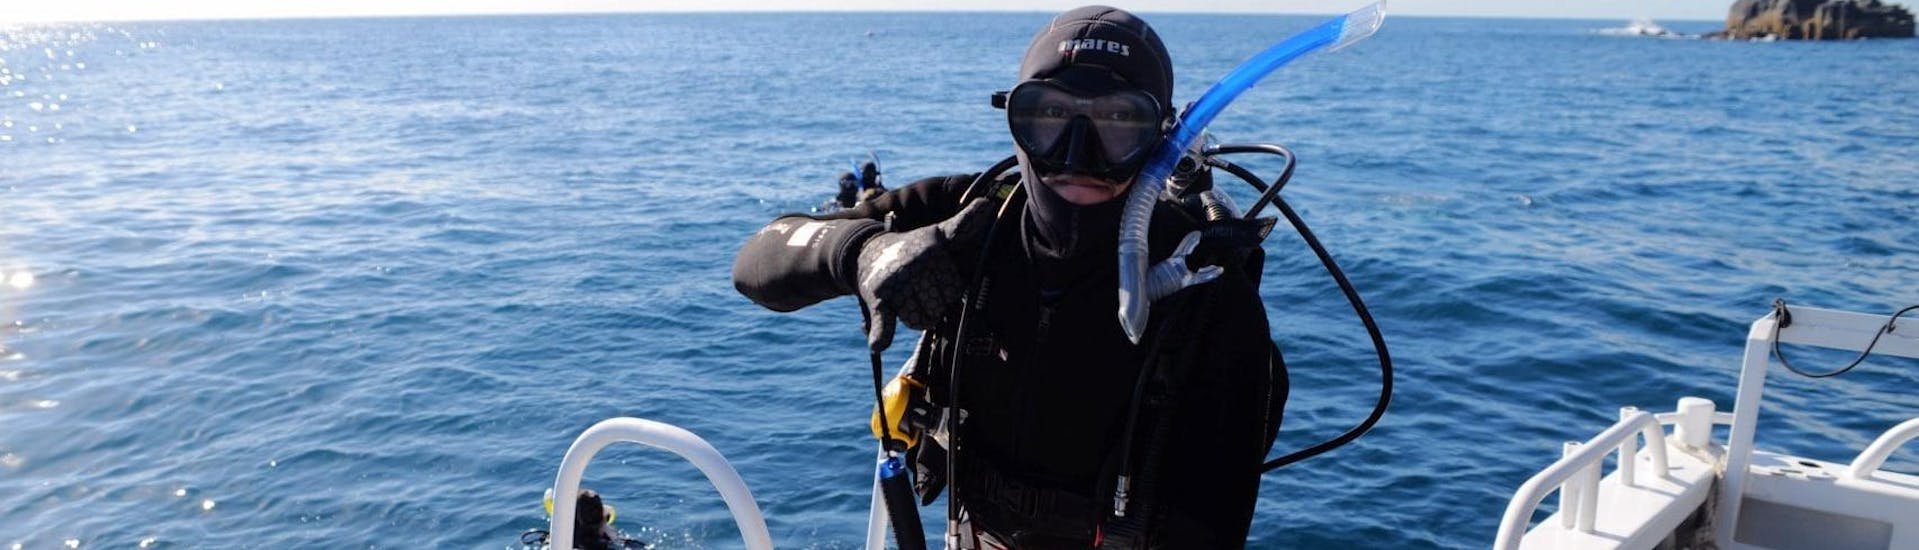 A happy customer is posing for a photo after having completed the Discover Scuba Diving at Wave Break Island for Beginners organised by Gold Coast Dive Centre.